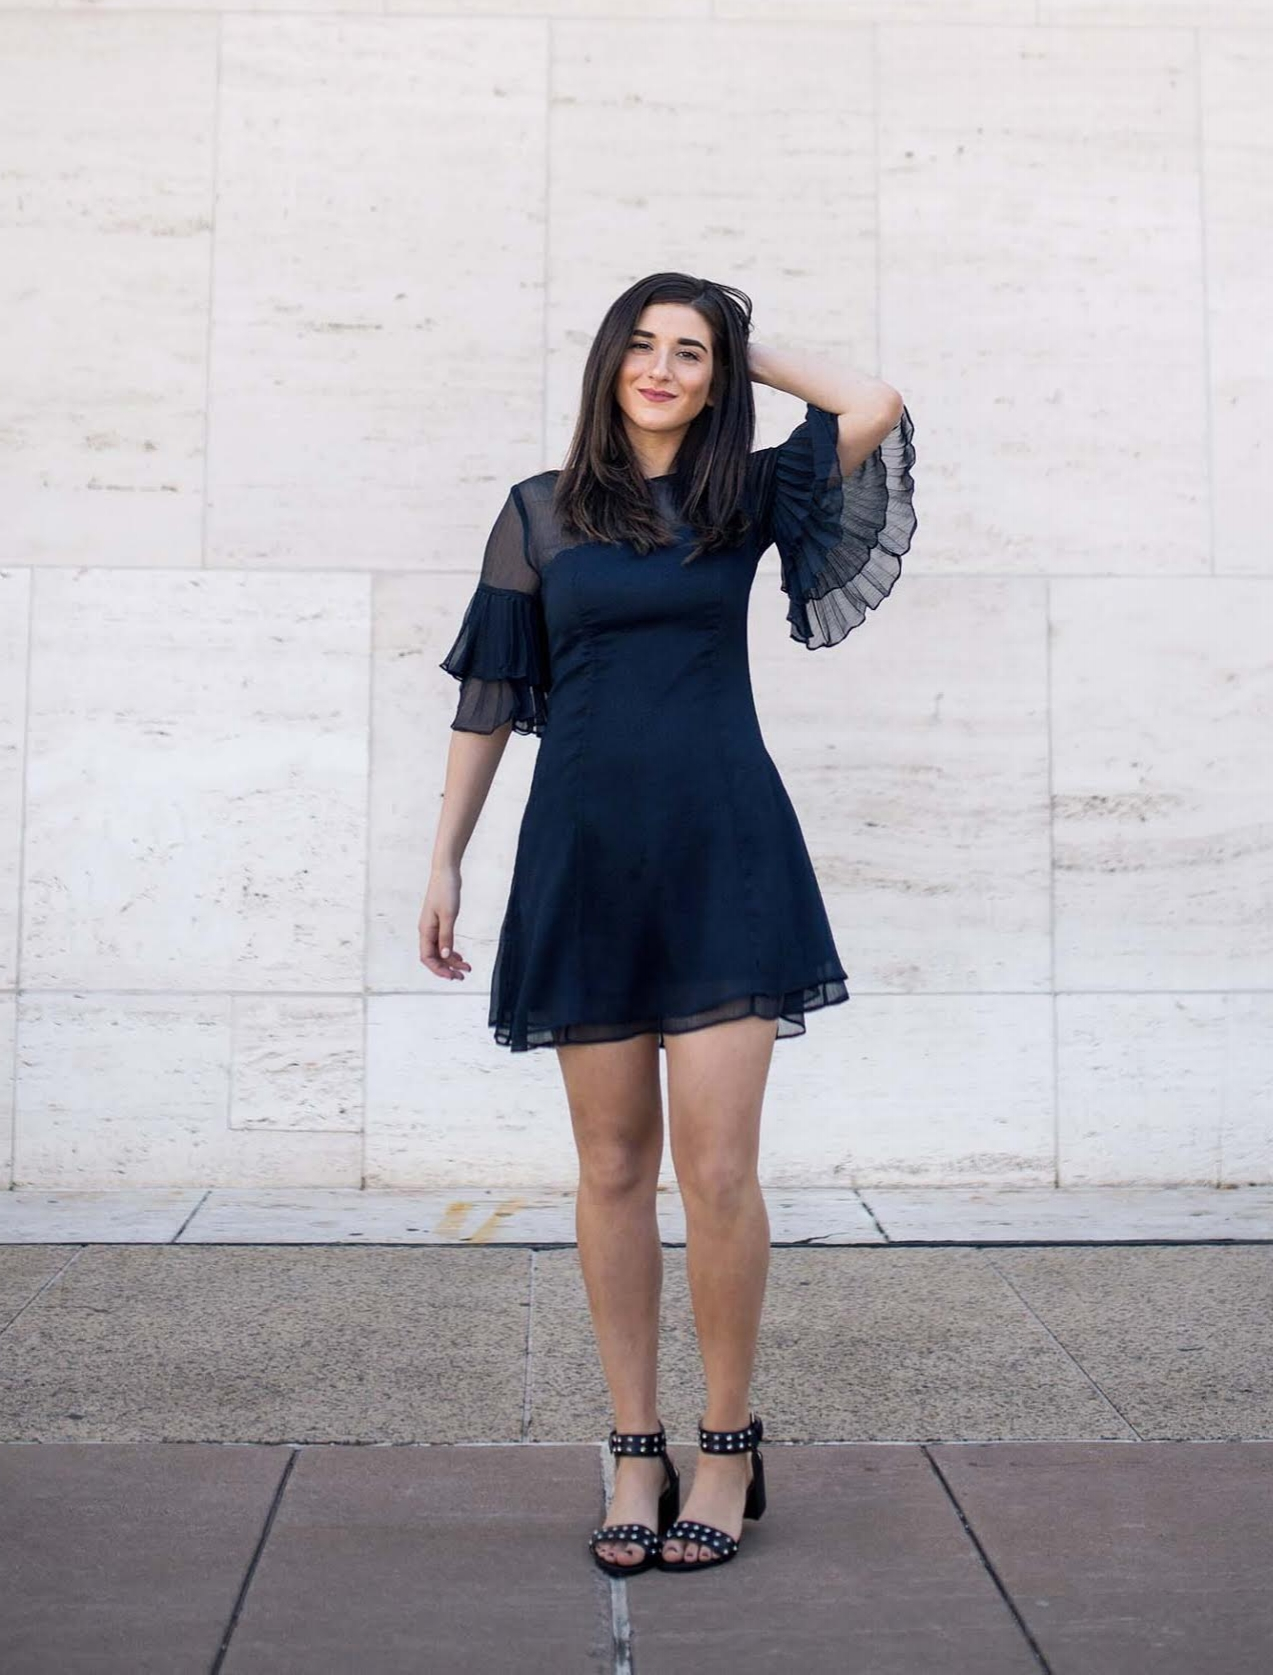 Lulus Ruffle Sleeve Dress The Best And Worst Fads of 2017 Esther Santer Fashion Blog NYC Street Style Blogger Outfit OOTD Trendy Pretty Feminine Navy Elegant Fancy Summer Look Sheer Black Studded Sandals Beauty Straight Hair Shop Photoshoot Girl Women.jpg